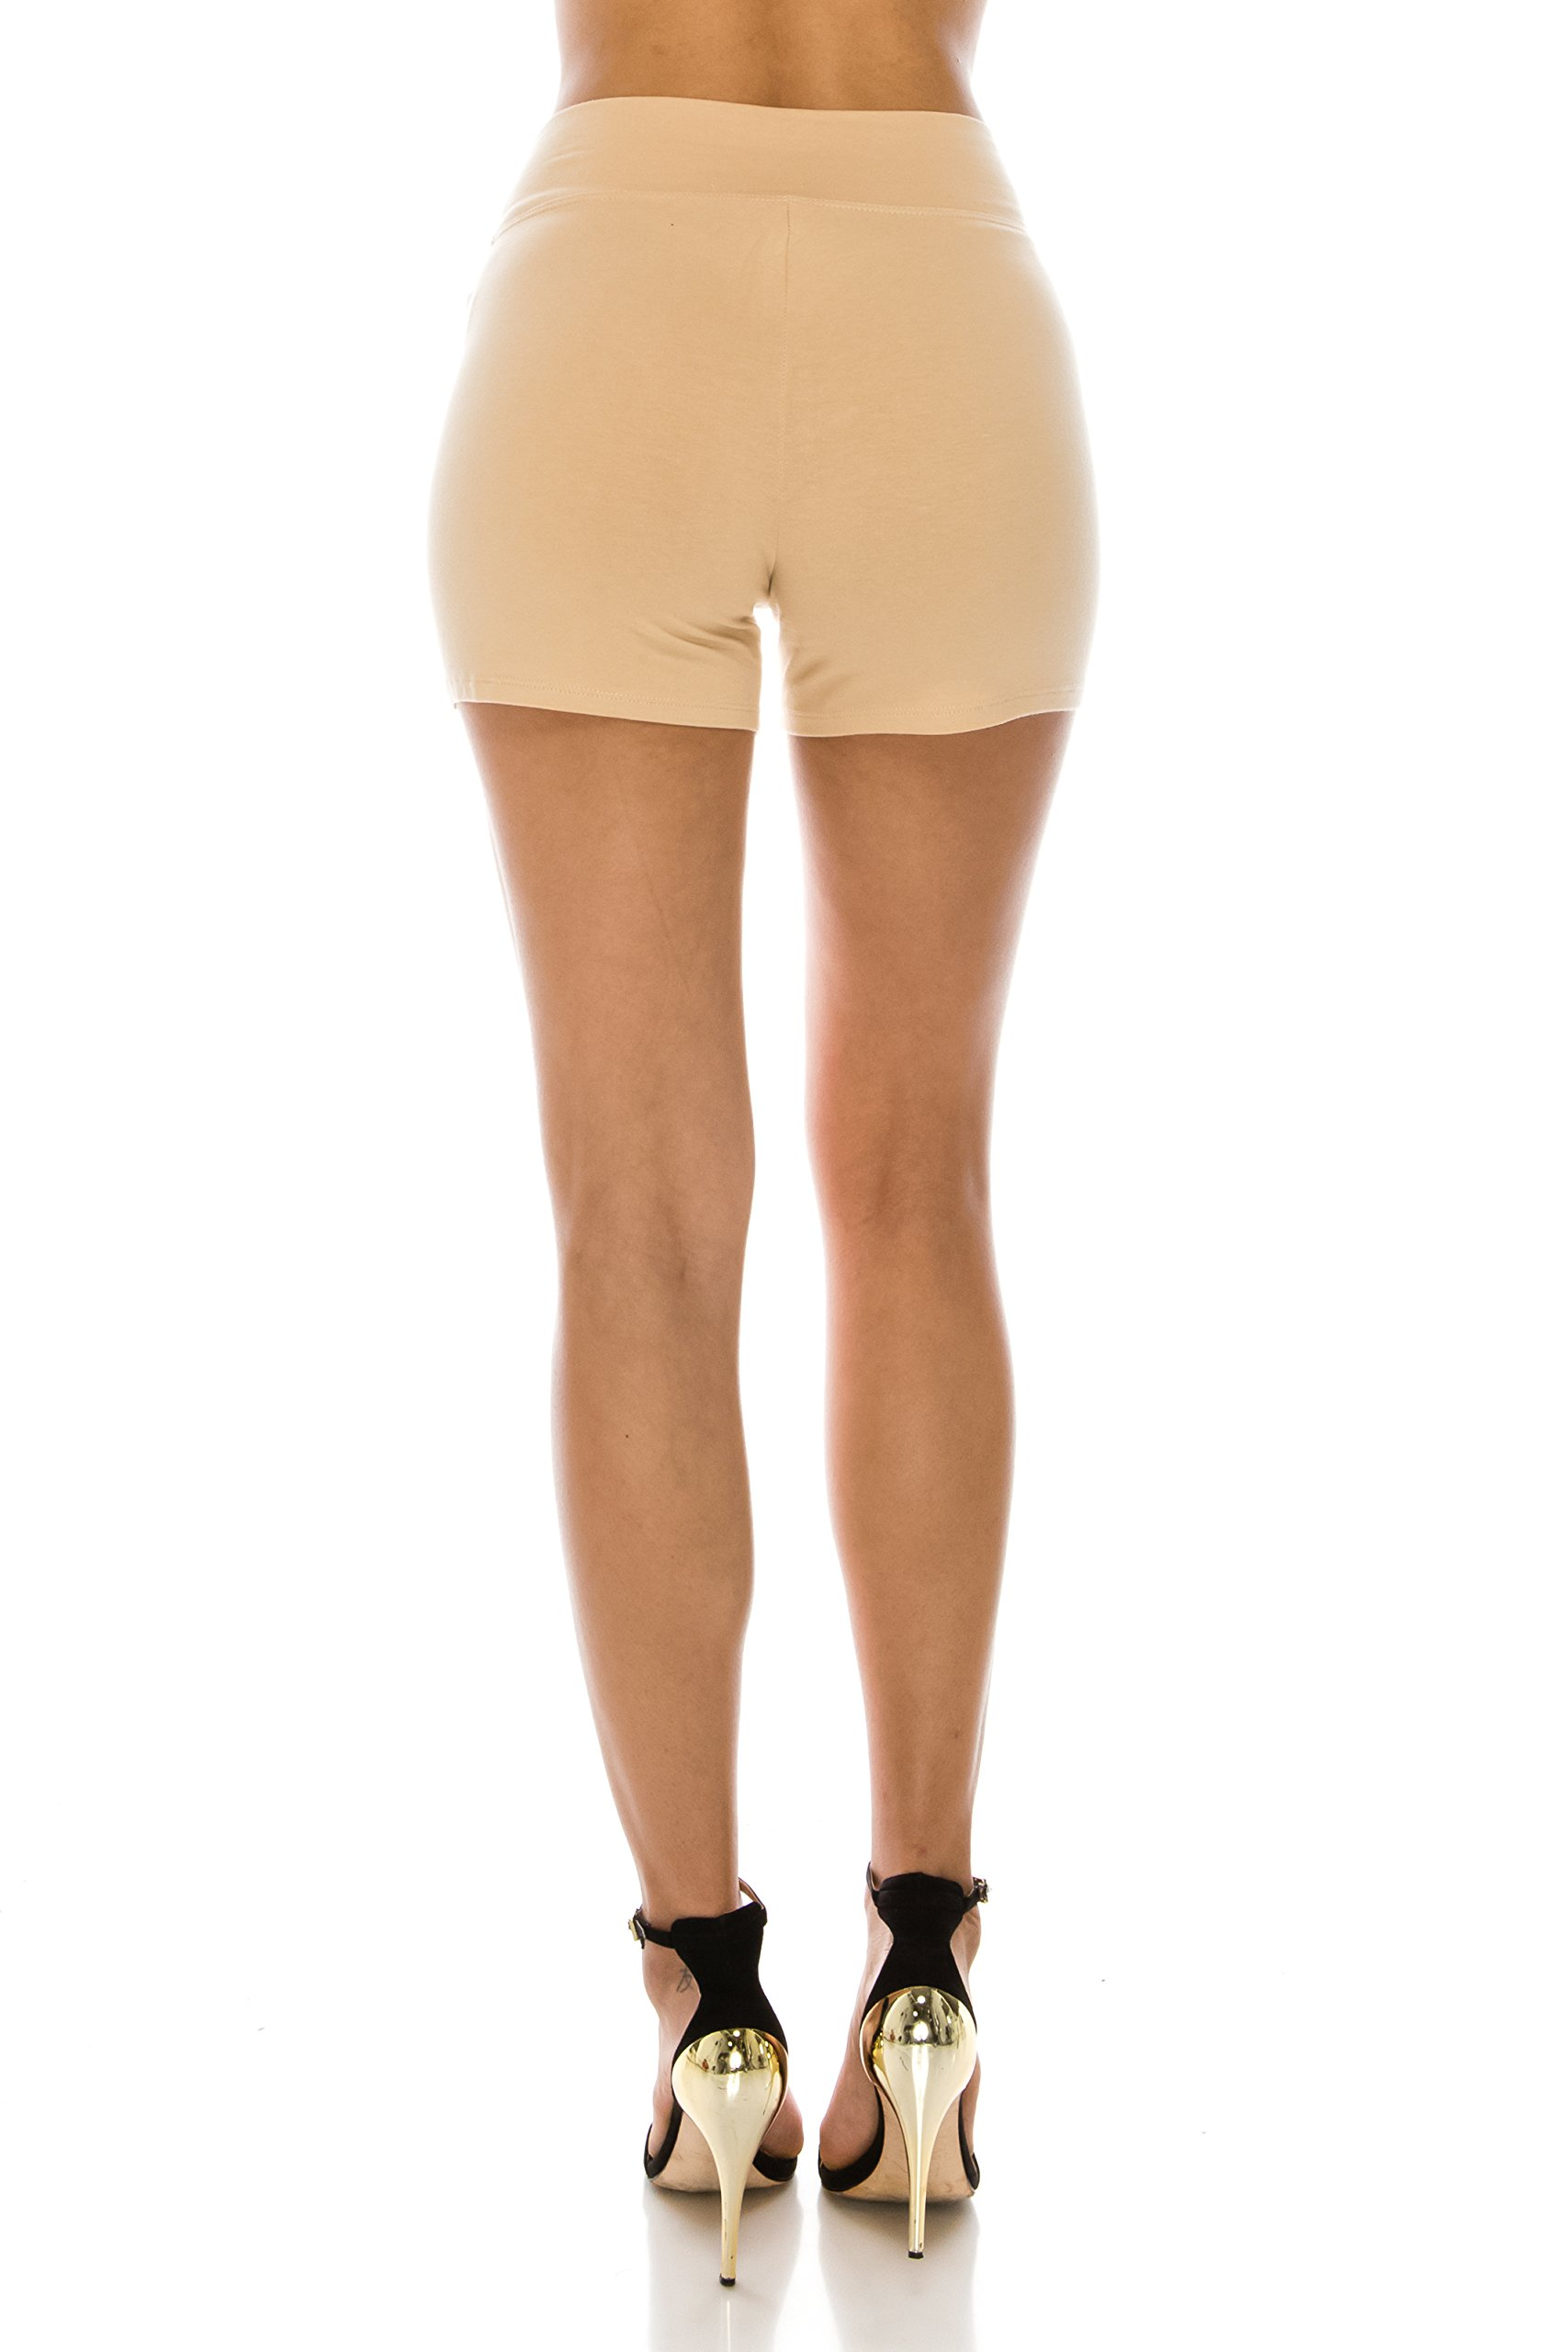 The Classic Women's Stretch Cotton Activewear Dance Yoga Booty Shorts Pants S to 3XL (Large, Nude_High) by The Classic (Image #2)